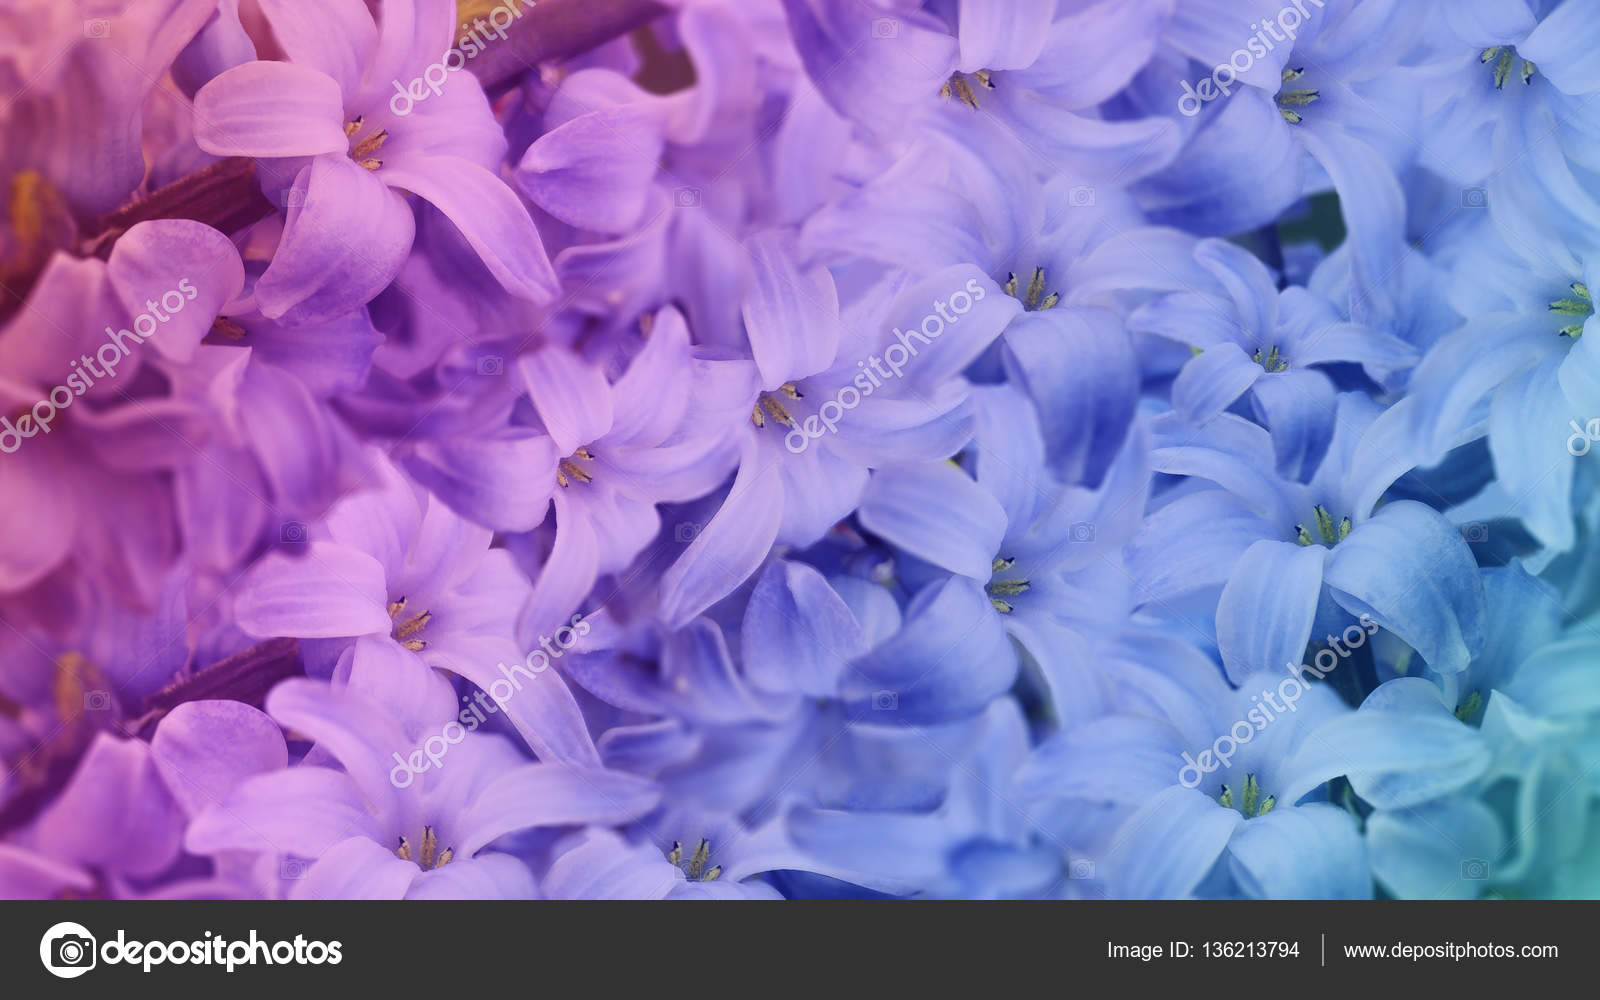 Iridescent Wallpaper Iridescent Flowers Lilac Floral Background Floral Wallpaper For